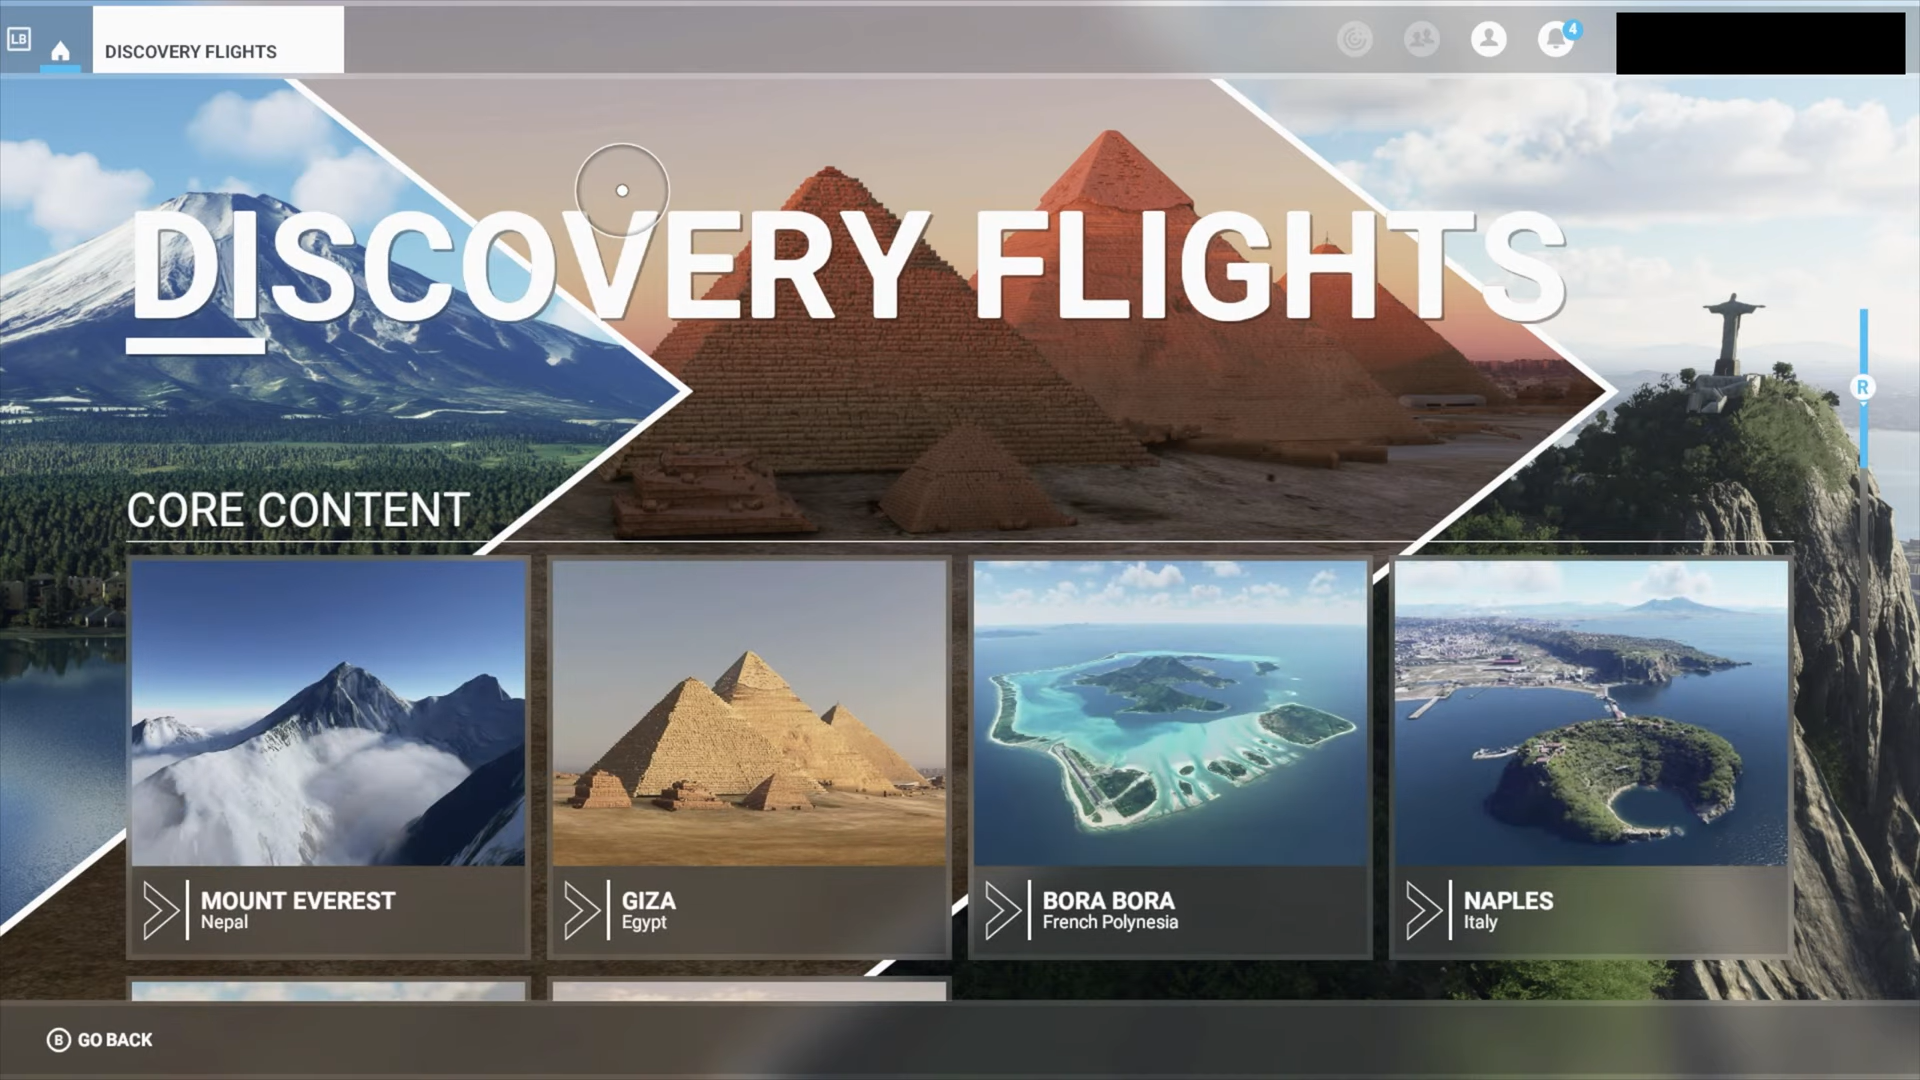 A screenshot showing some of the Discovery Flights locations.